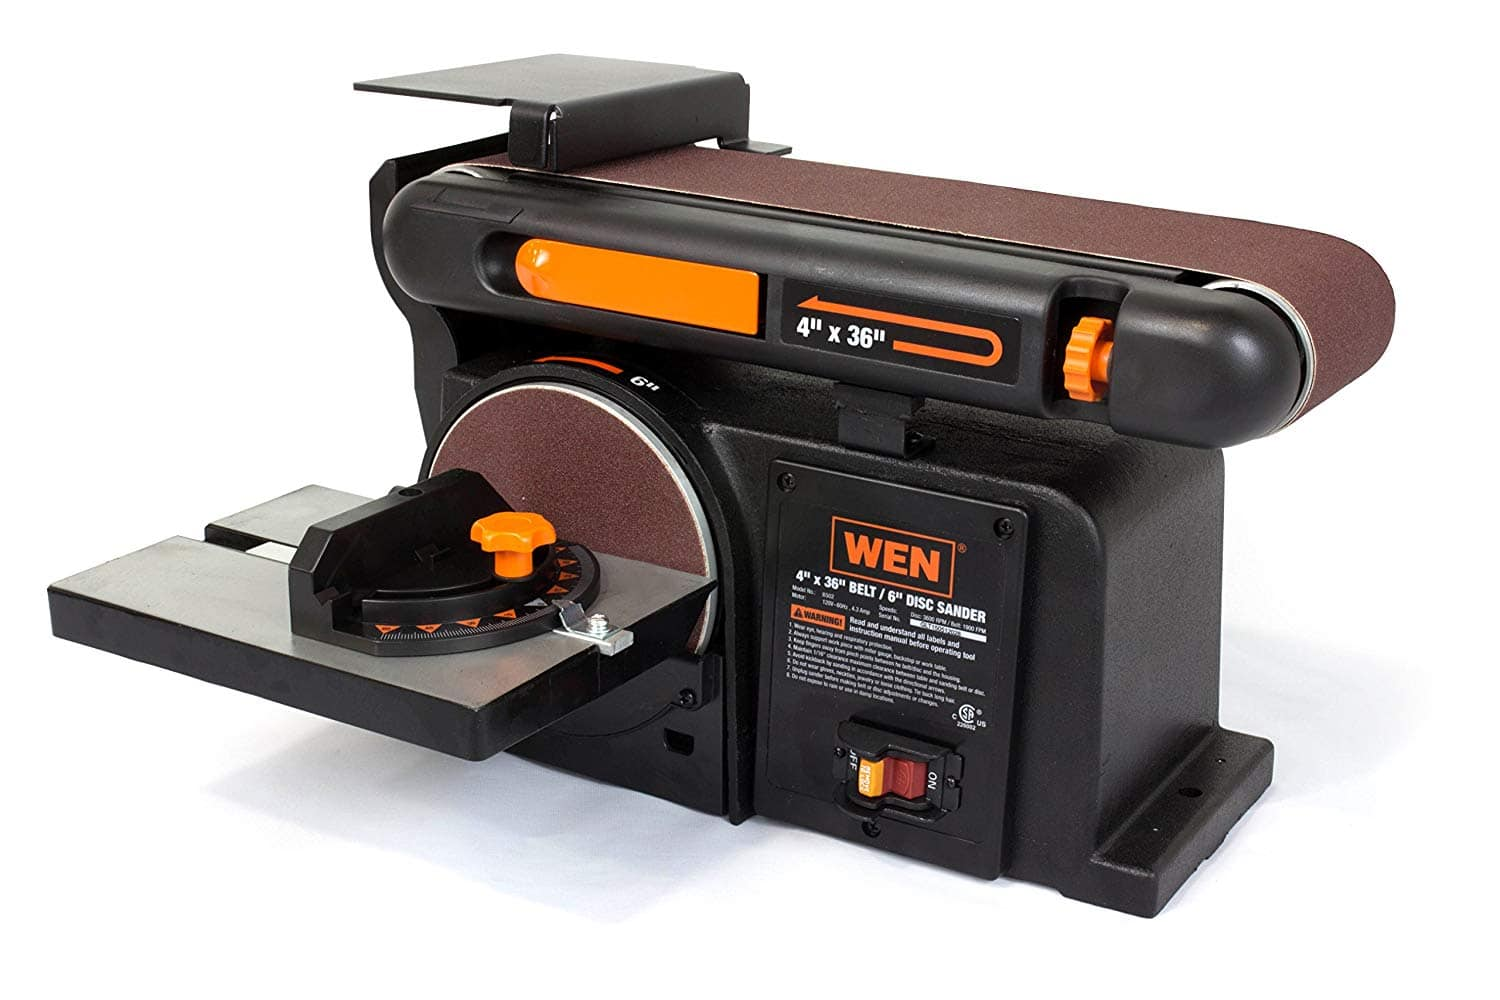 WEN 6502T 4.3-Amp 4 x 36 in. Belt and 6 in. Disc Sander with Cast Iron Base [6-inch Disc w/ Cast Iron Base] $95.83